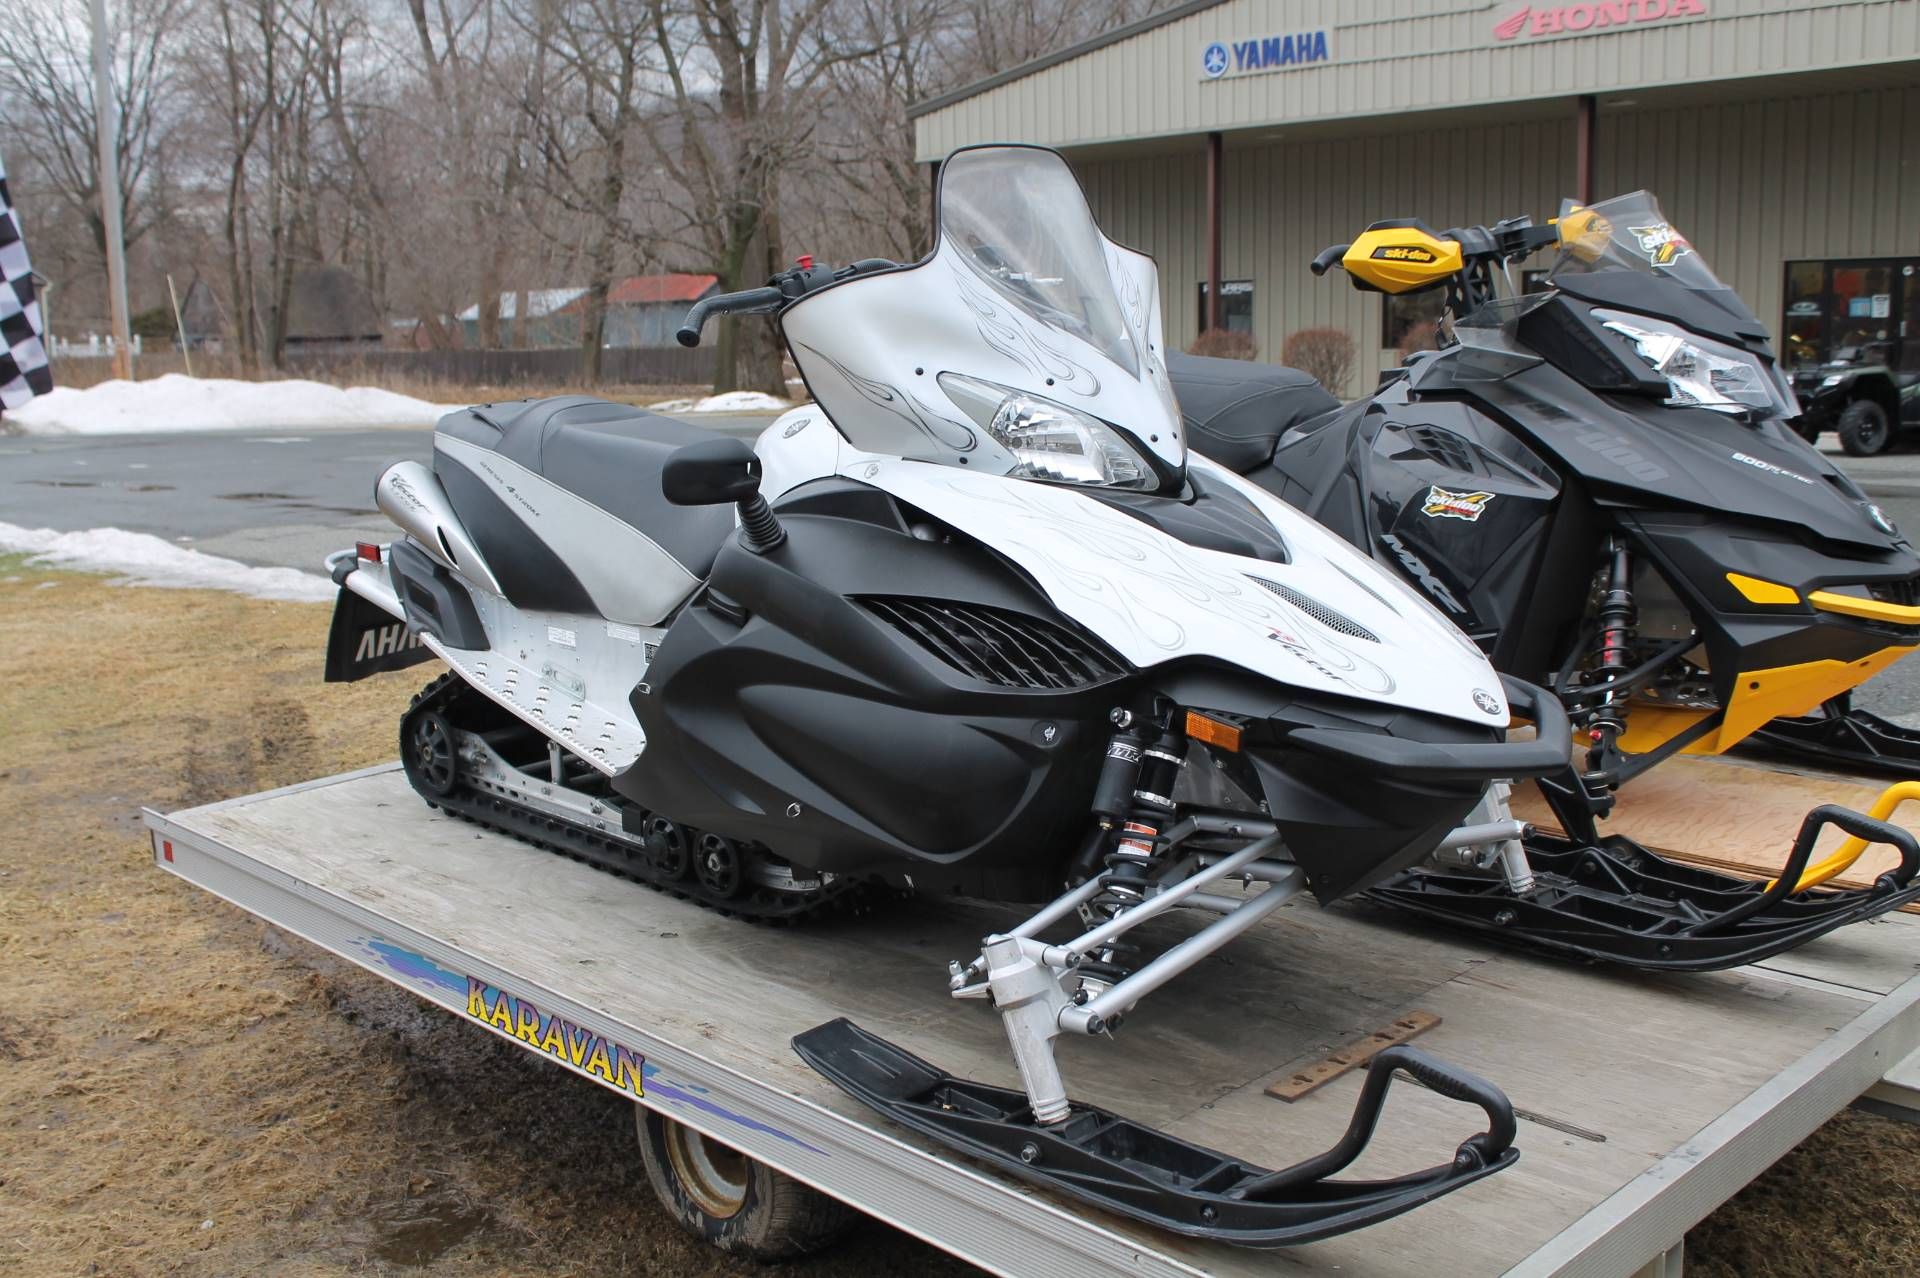 Used 2010 yamaha rs vector gt snowmobiles in adams ma for Yamaha credit card phone number